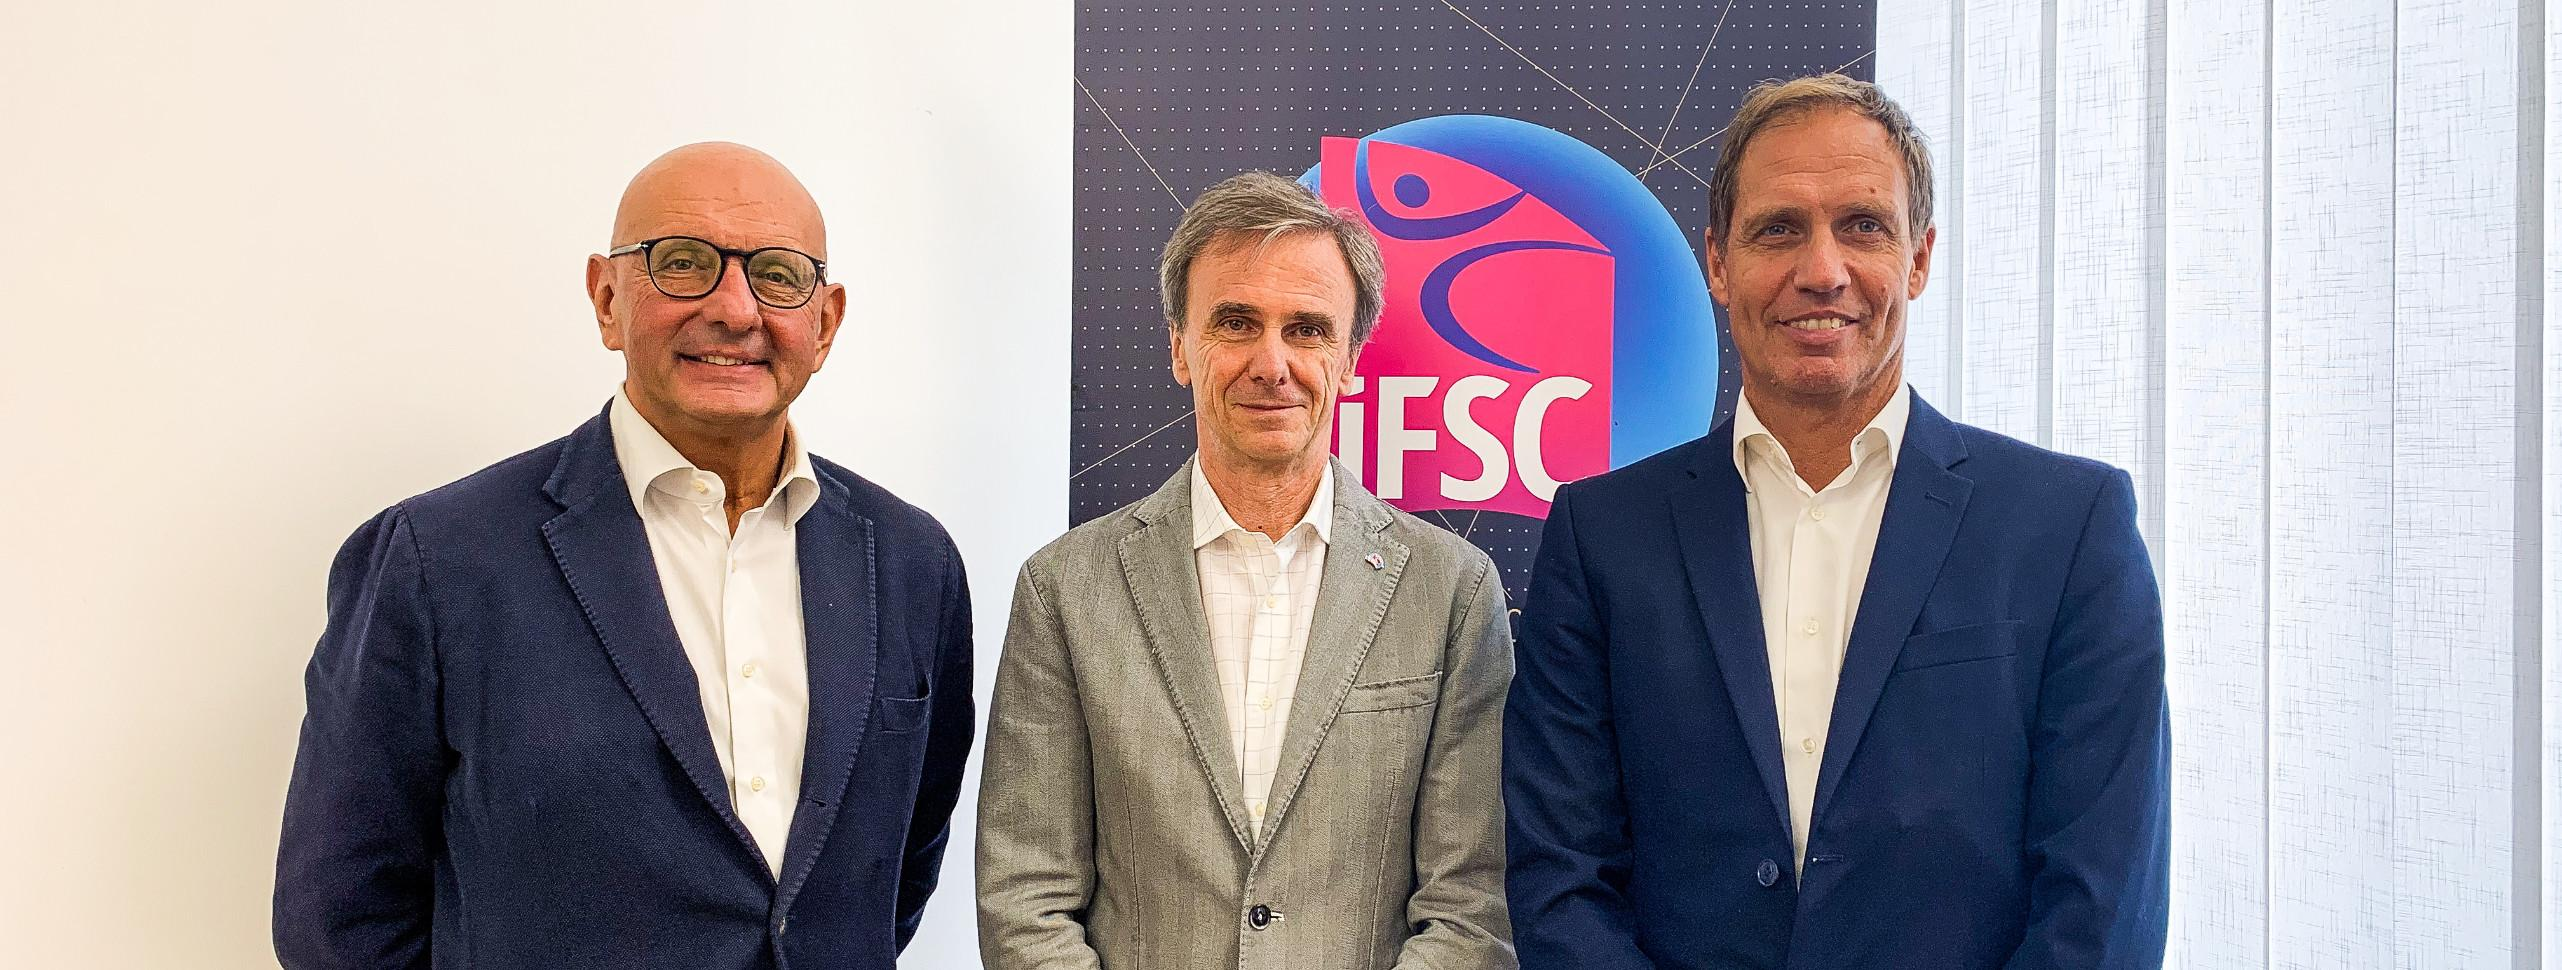 IFSC STAFF ATTEND FIRST INTERNAL SEMINAR IN THE LEAD UP TO TOKYO 2020